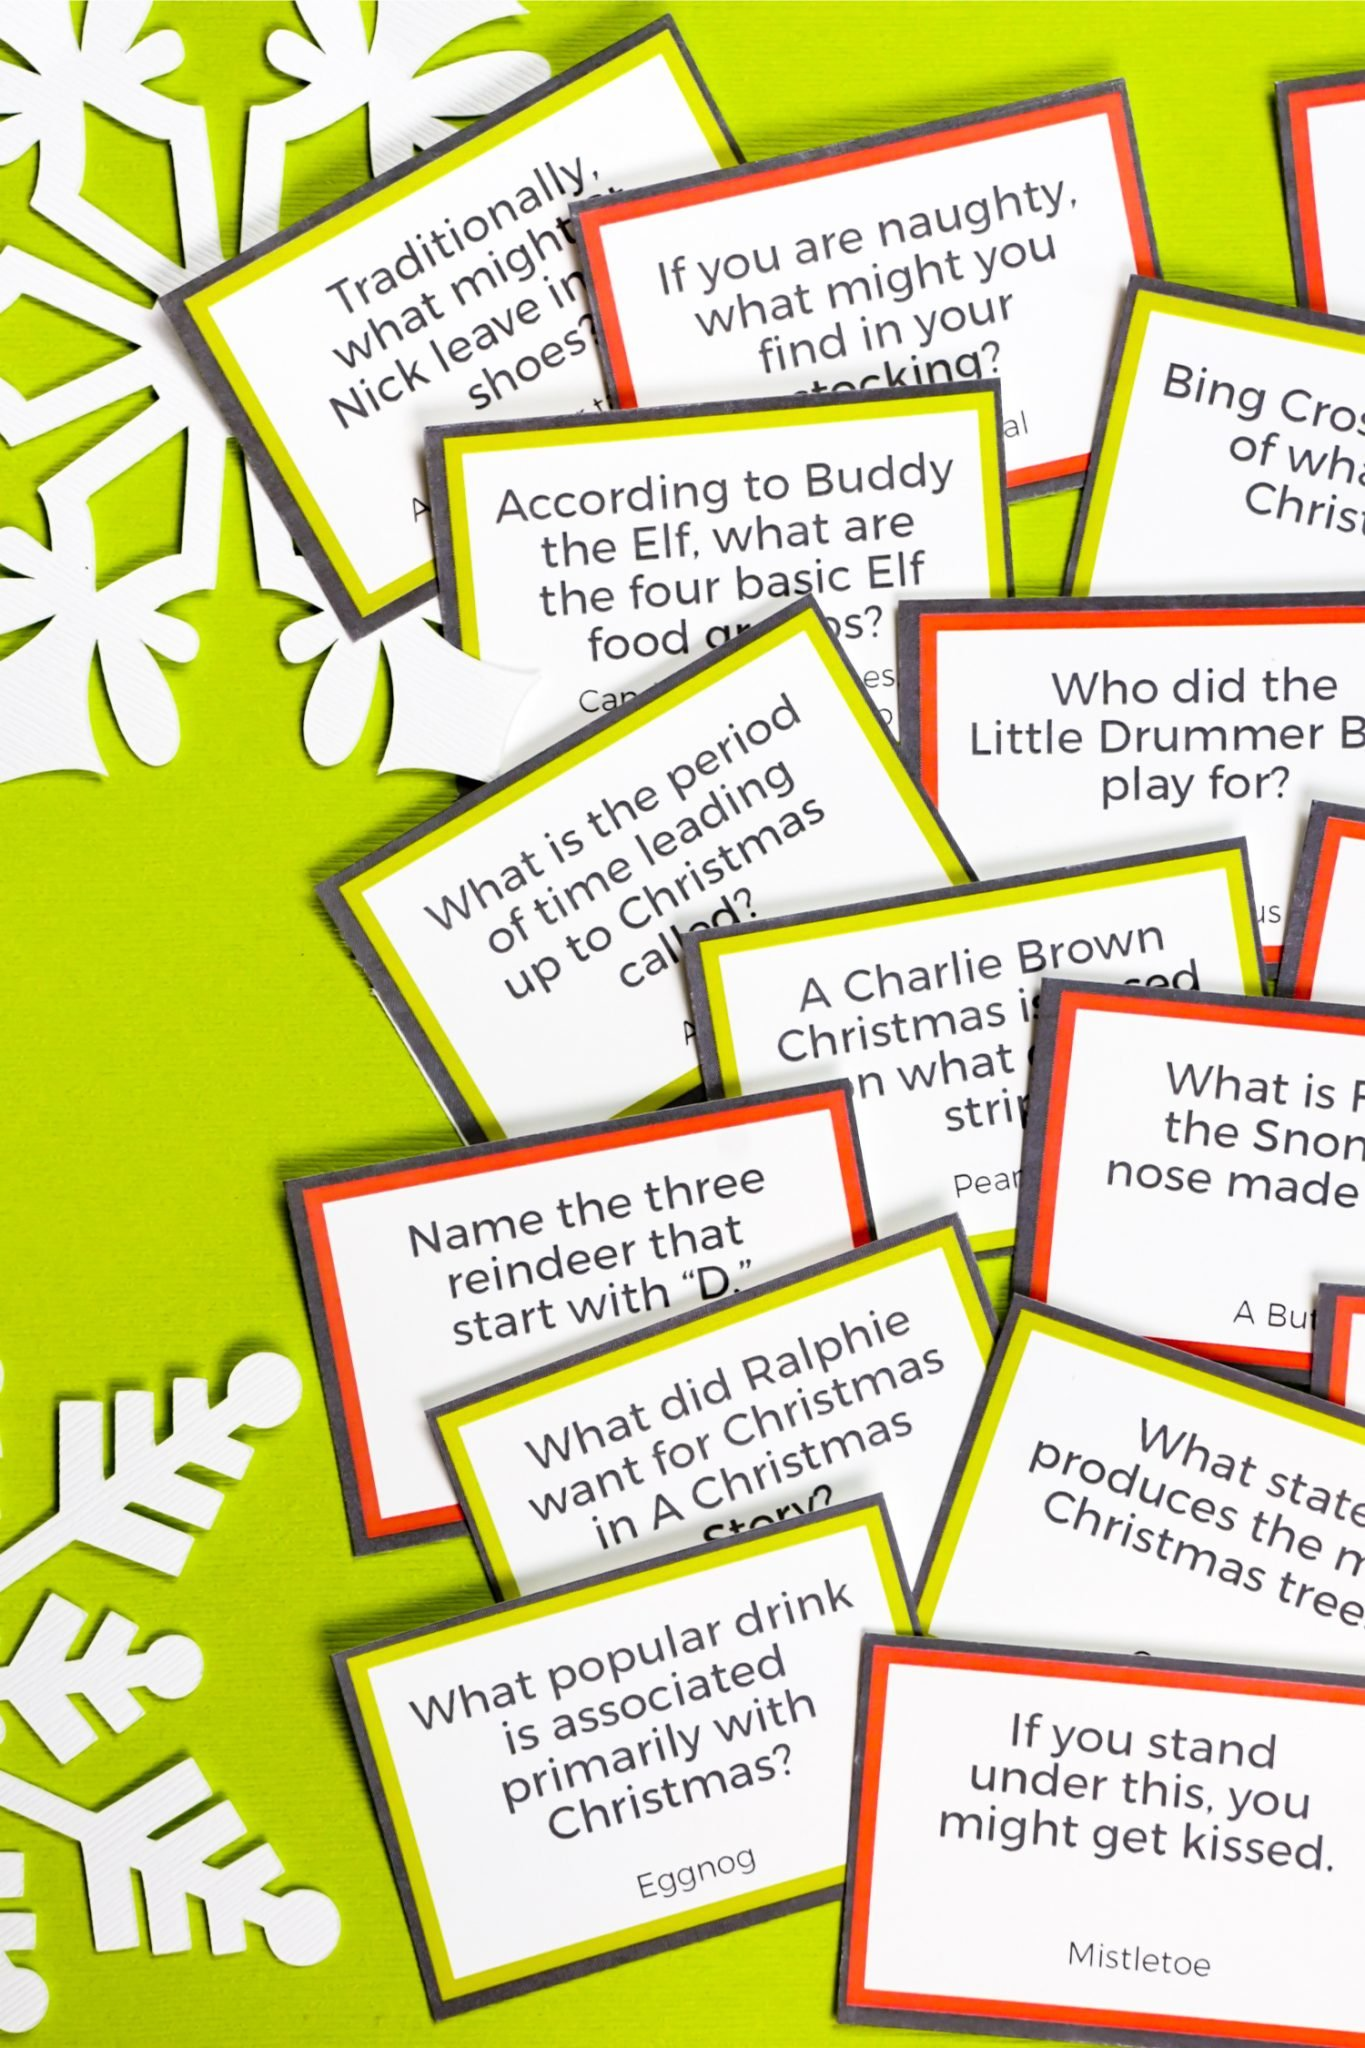 Test your knowledge of the merriest of holidays with this free printable Christmas trivia. Play with family and friends as you sip hot cocoa around a fireplace or plan a trivia night with friends for some holiday cheer!